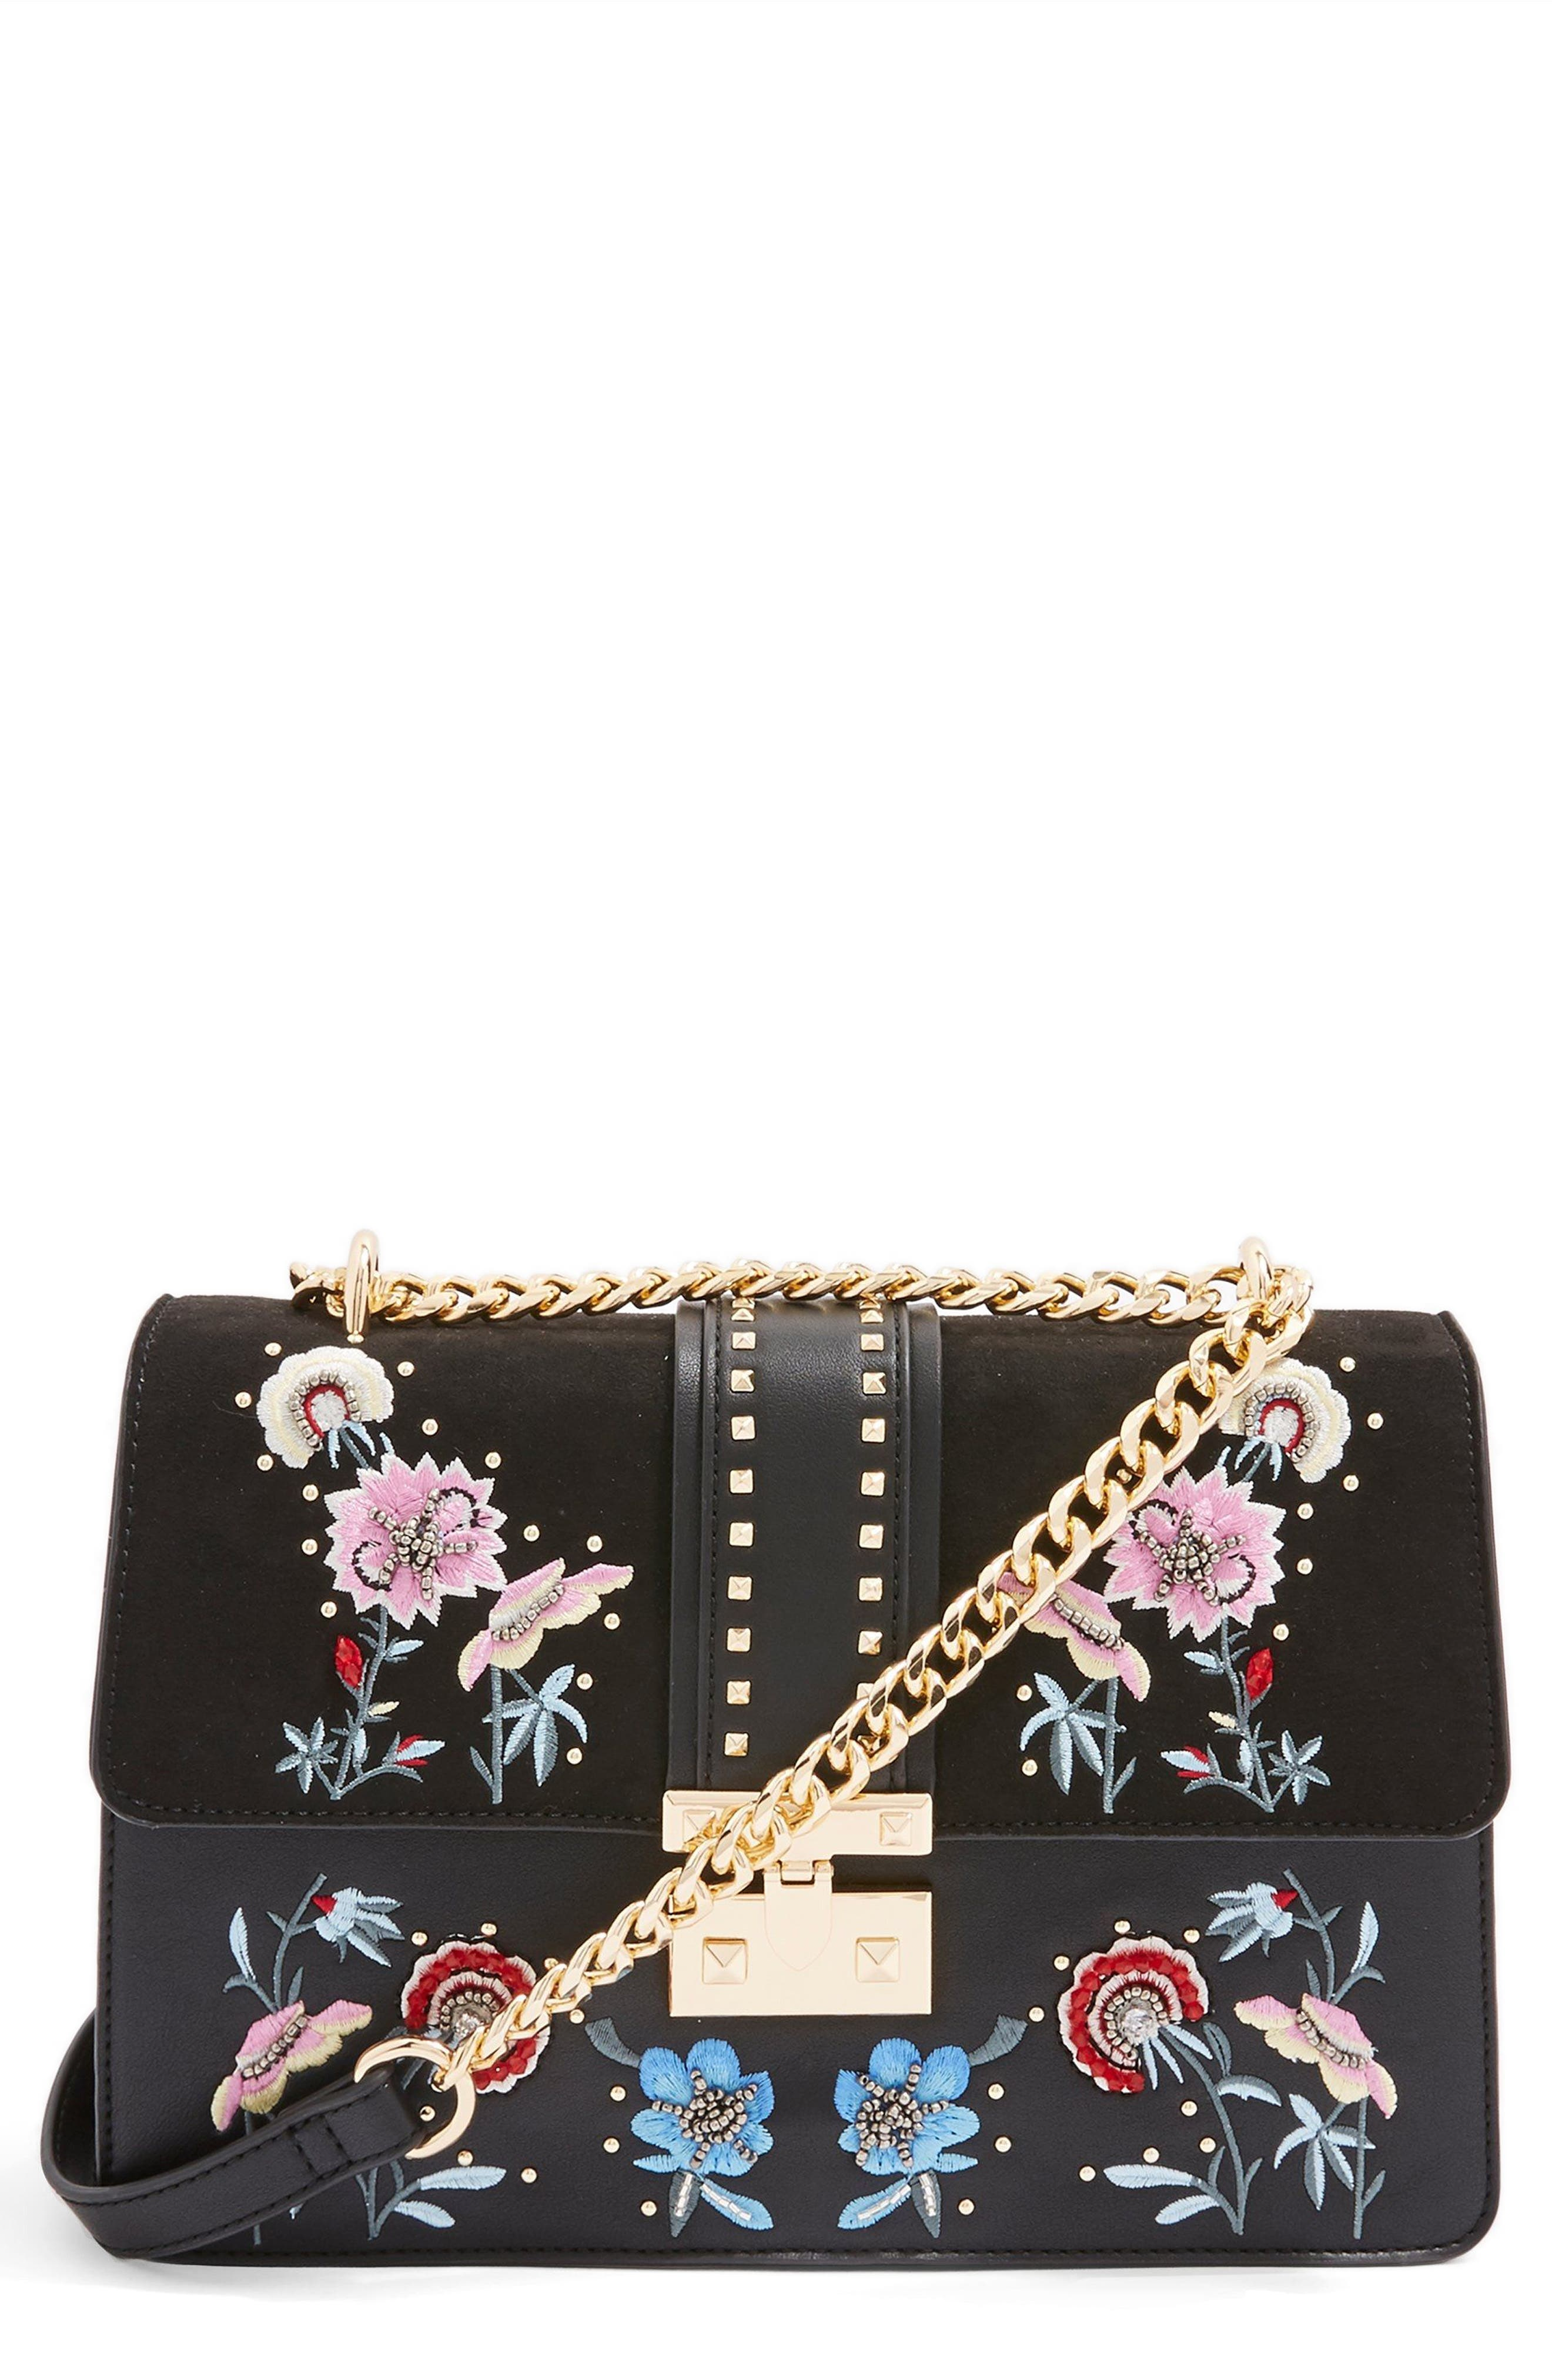 Darcy Floral Shoulder Bag,                         Main,                         color, 001